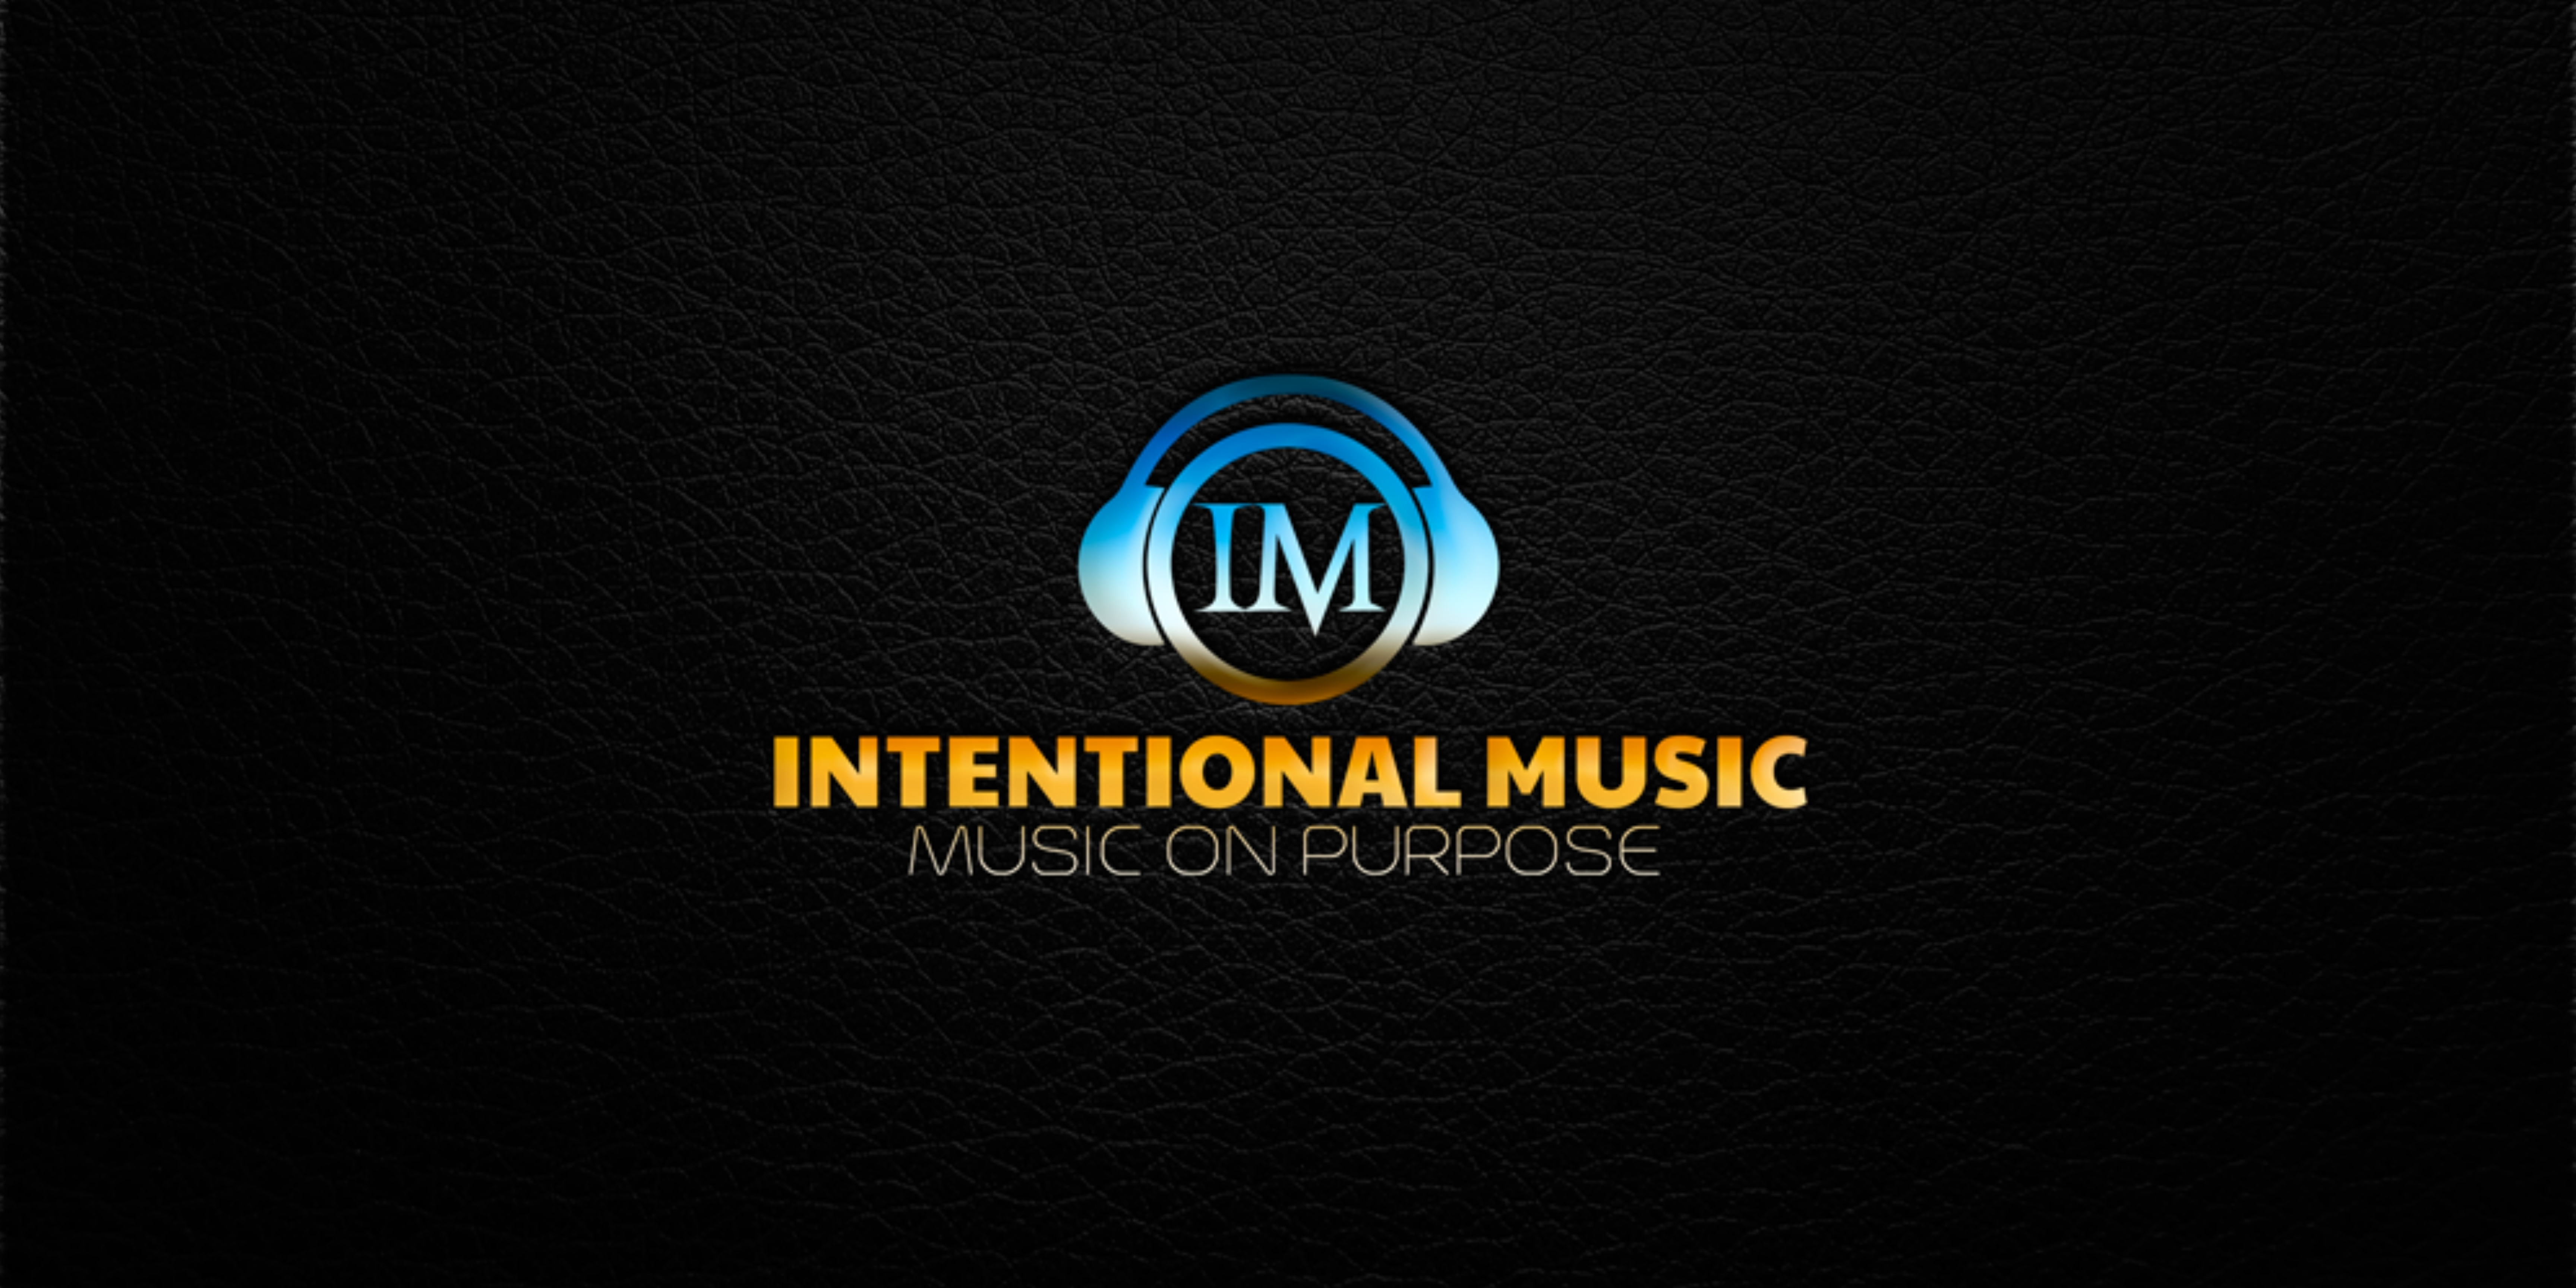 Intentional Music